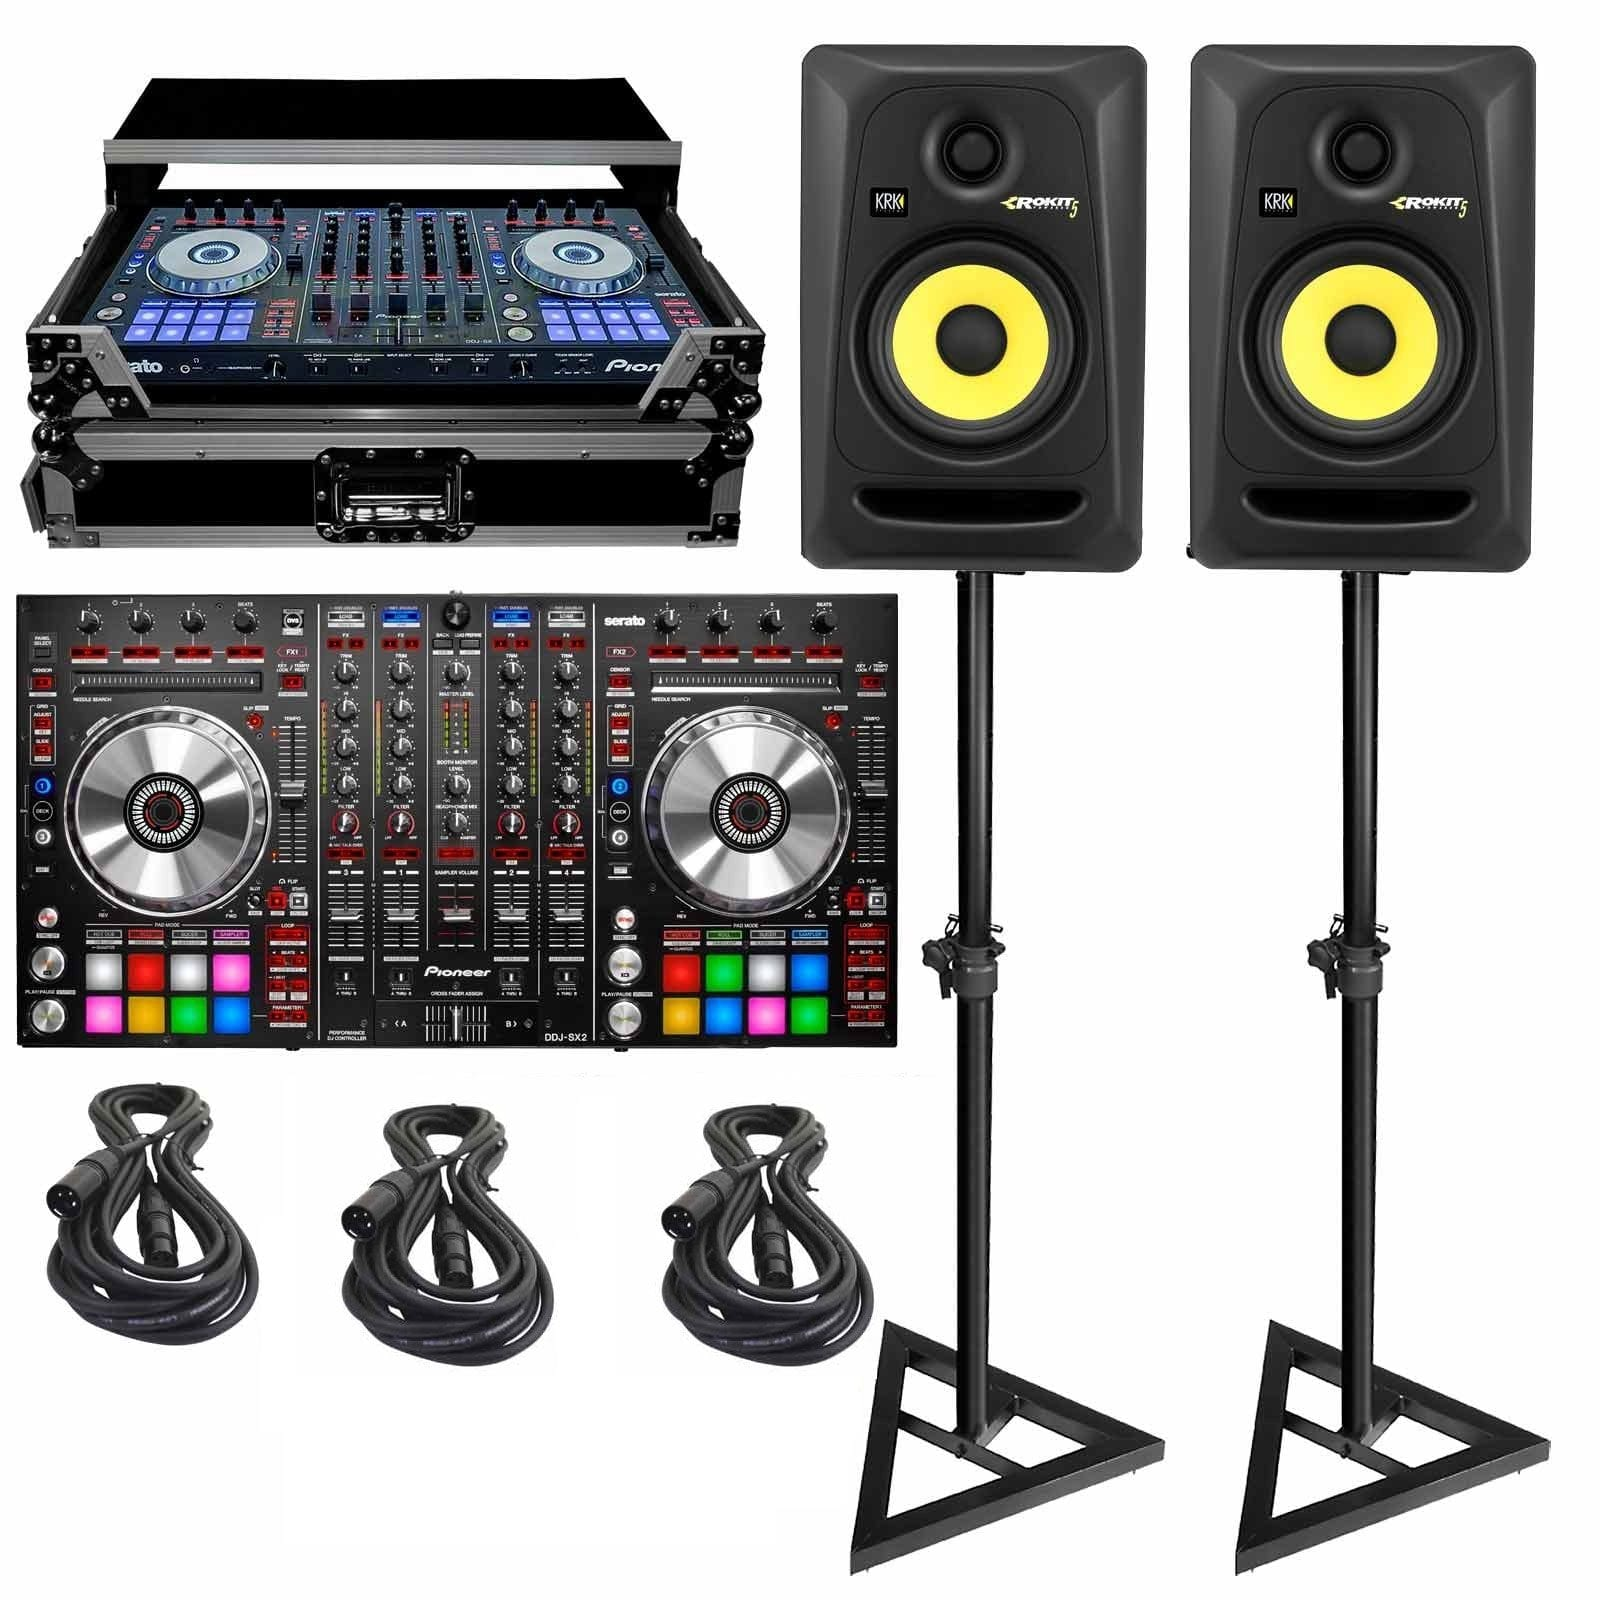 pioneer-ddj-sx2-4-channel-serato-dj-controller-with-case-monitor-speakers-yellow-cables-pa